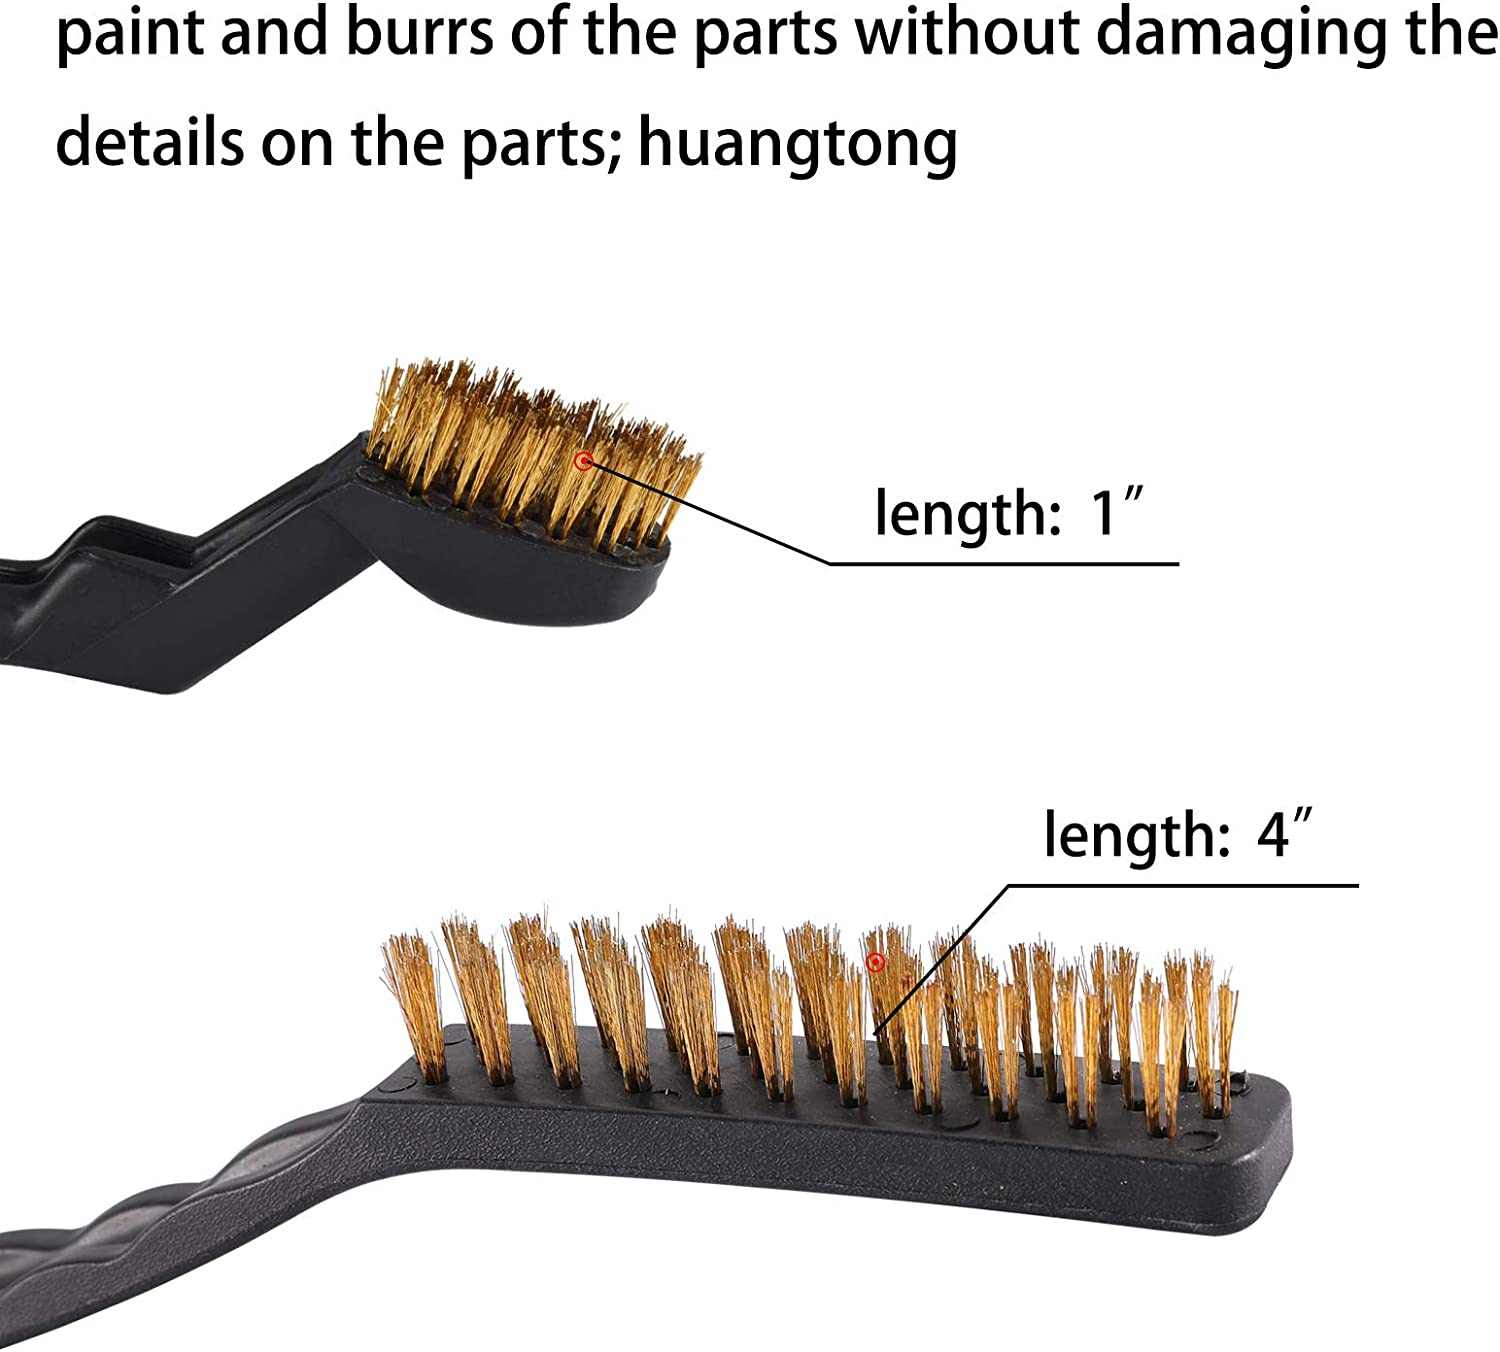 TILAX 4 Pcs Wire Brush Set,Curved Handle Metal Wire Brush Scratch Brush for Cleaning Welding Slag Rust and Dust Curved Handle Stainless Steel and Brass